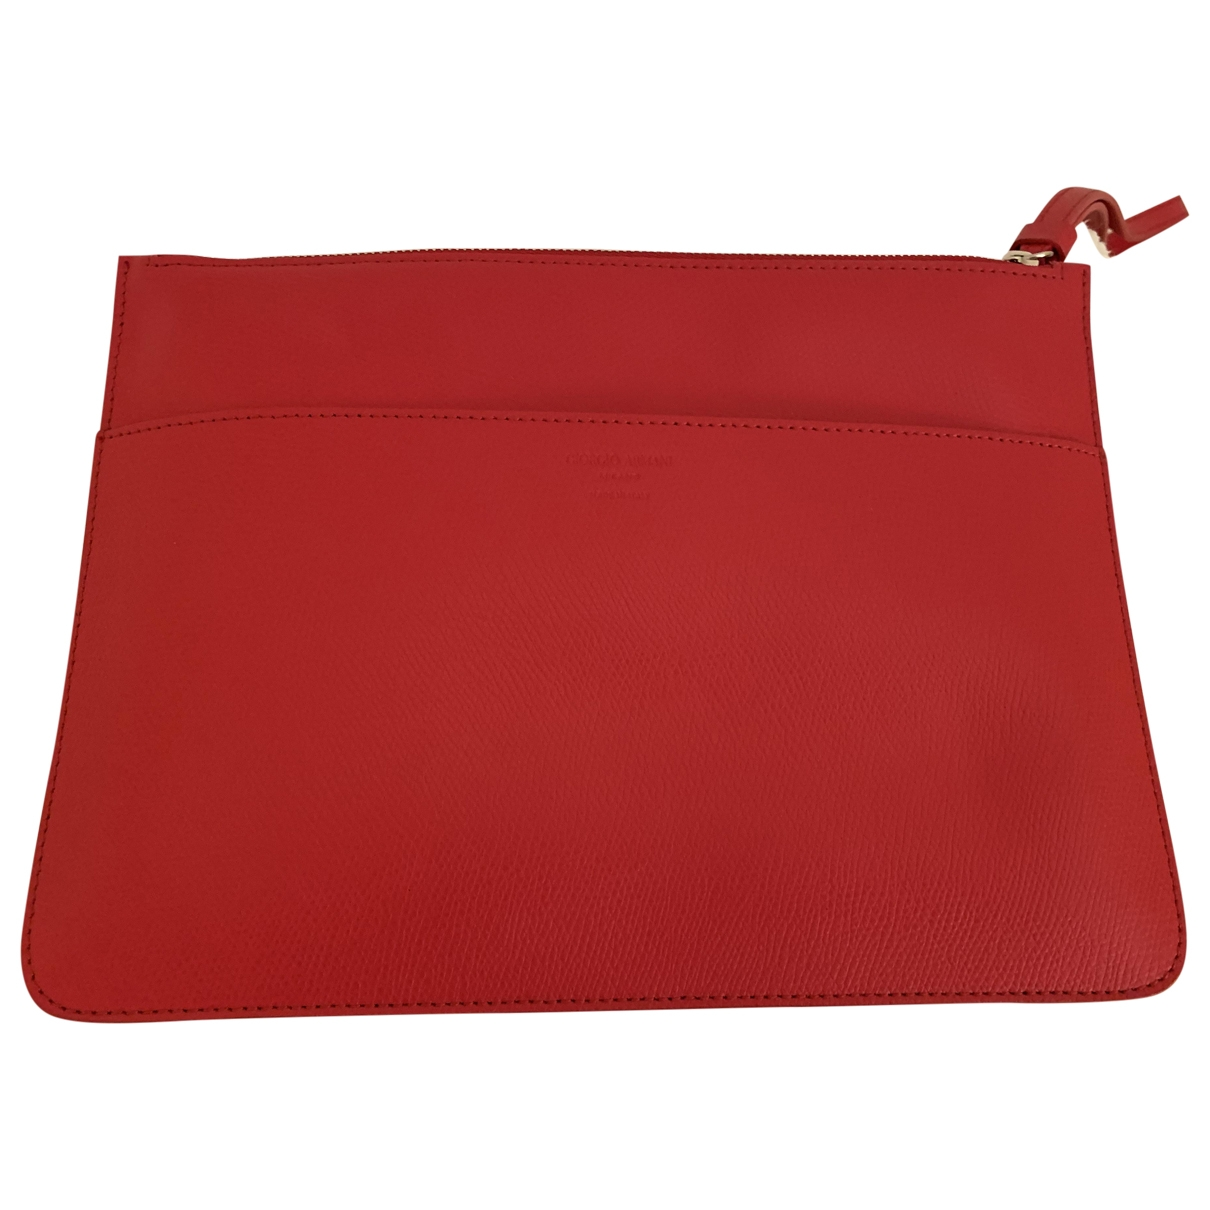 Giorgio Armani \N Red Leather Clutch bag for Women \N